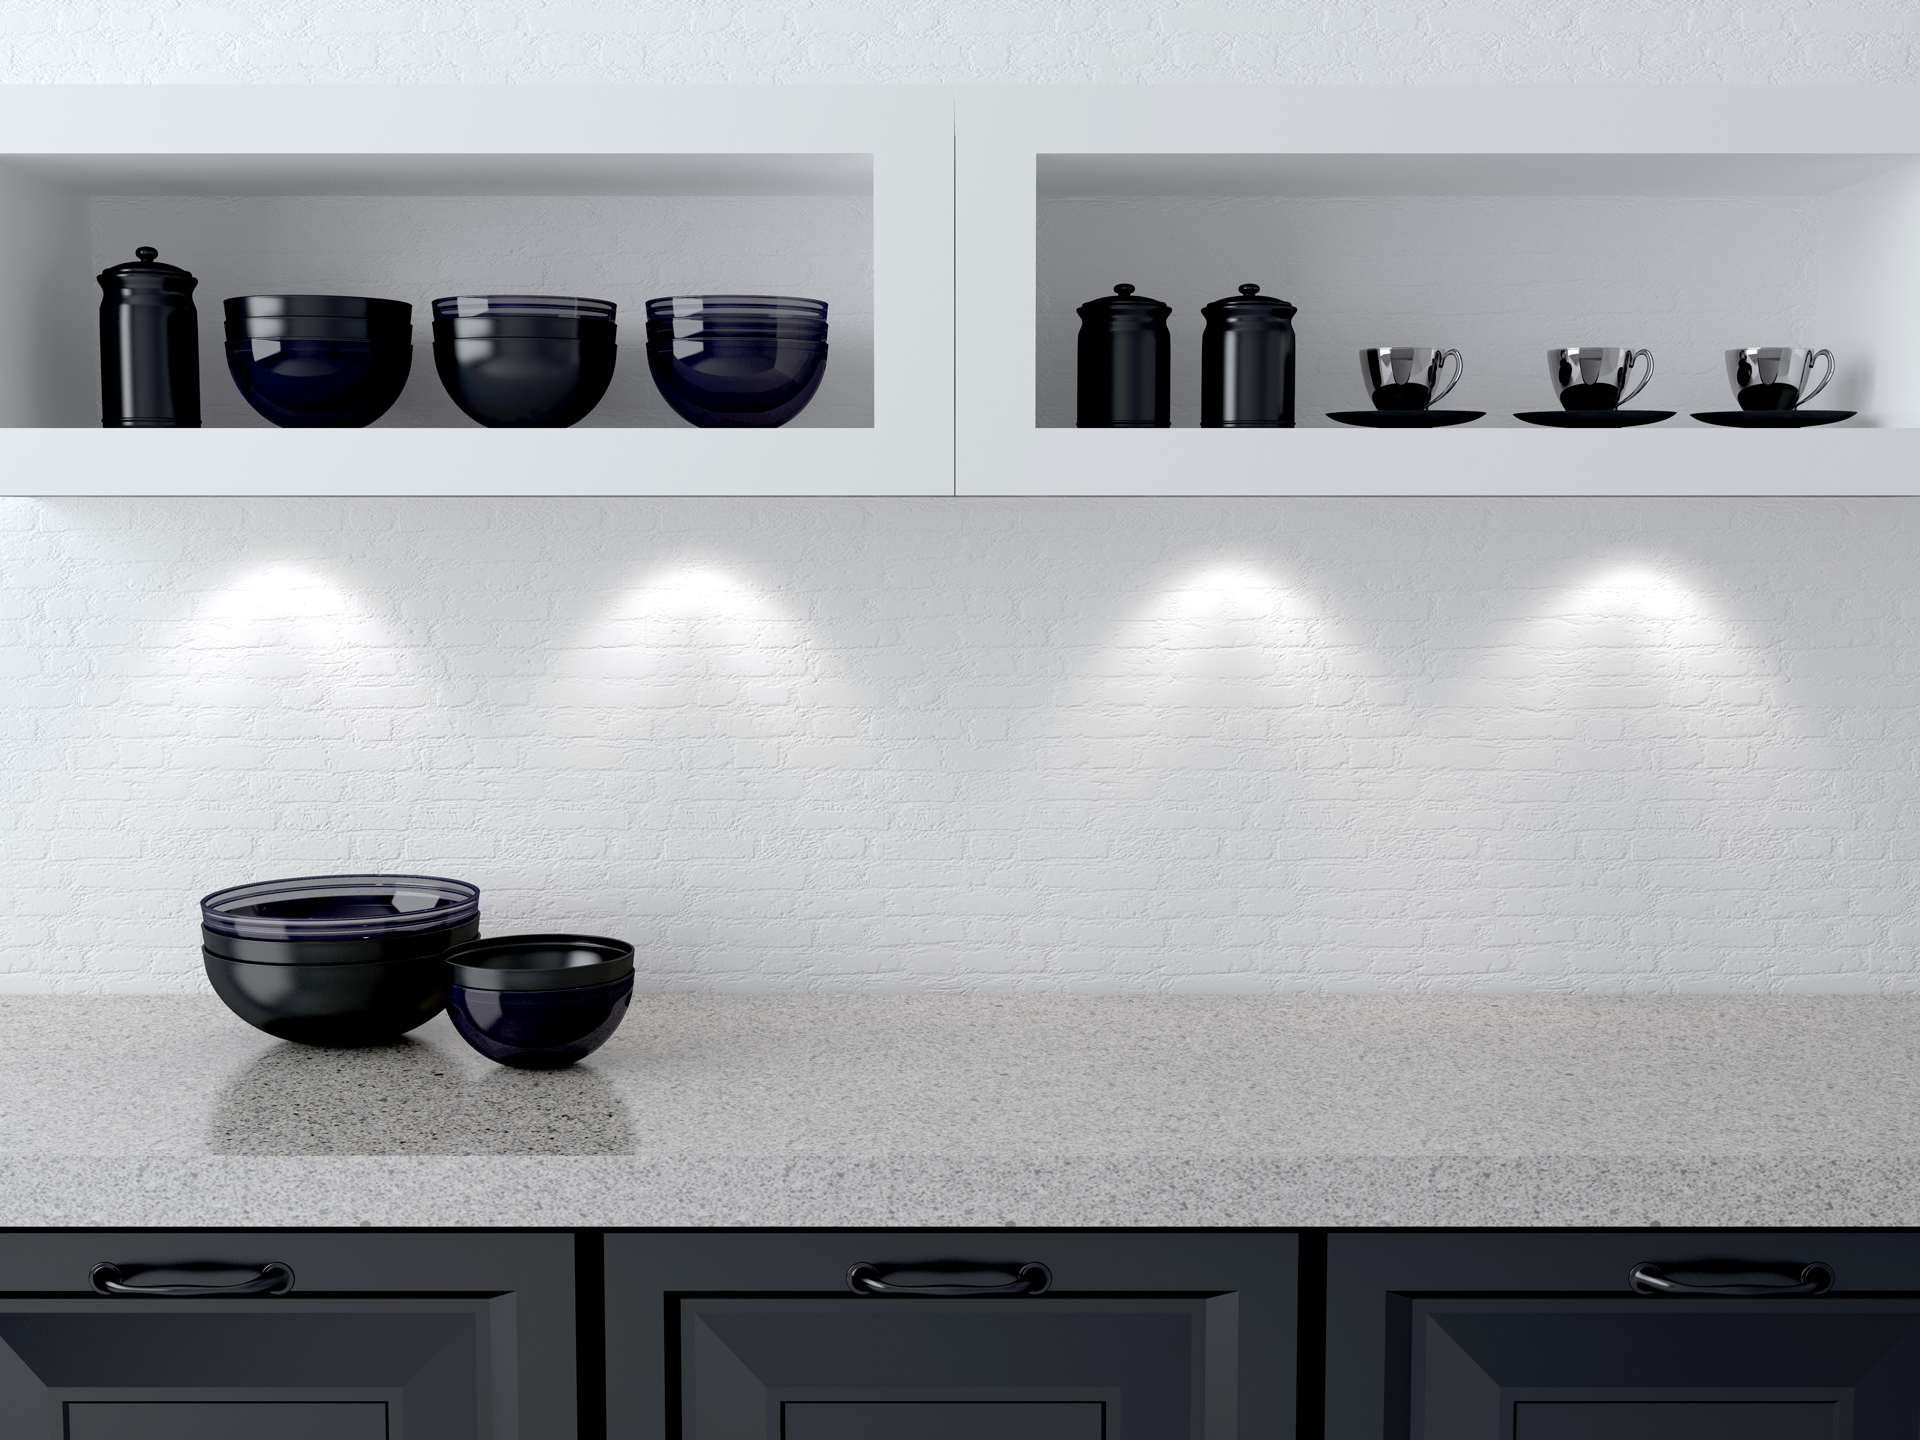 Kitchen design trends that will rule the roost in 2017 18 cabinetcorp kitchen design trends that will rule the roost in 2017 18 solutioingenieria Gallery